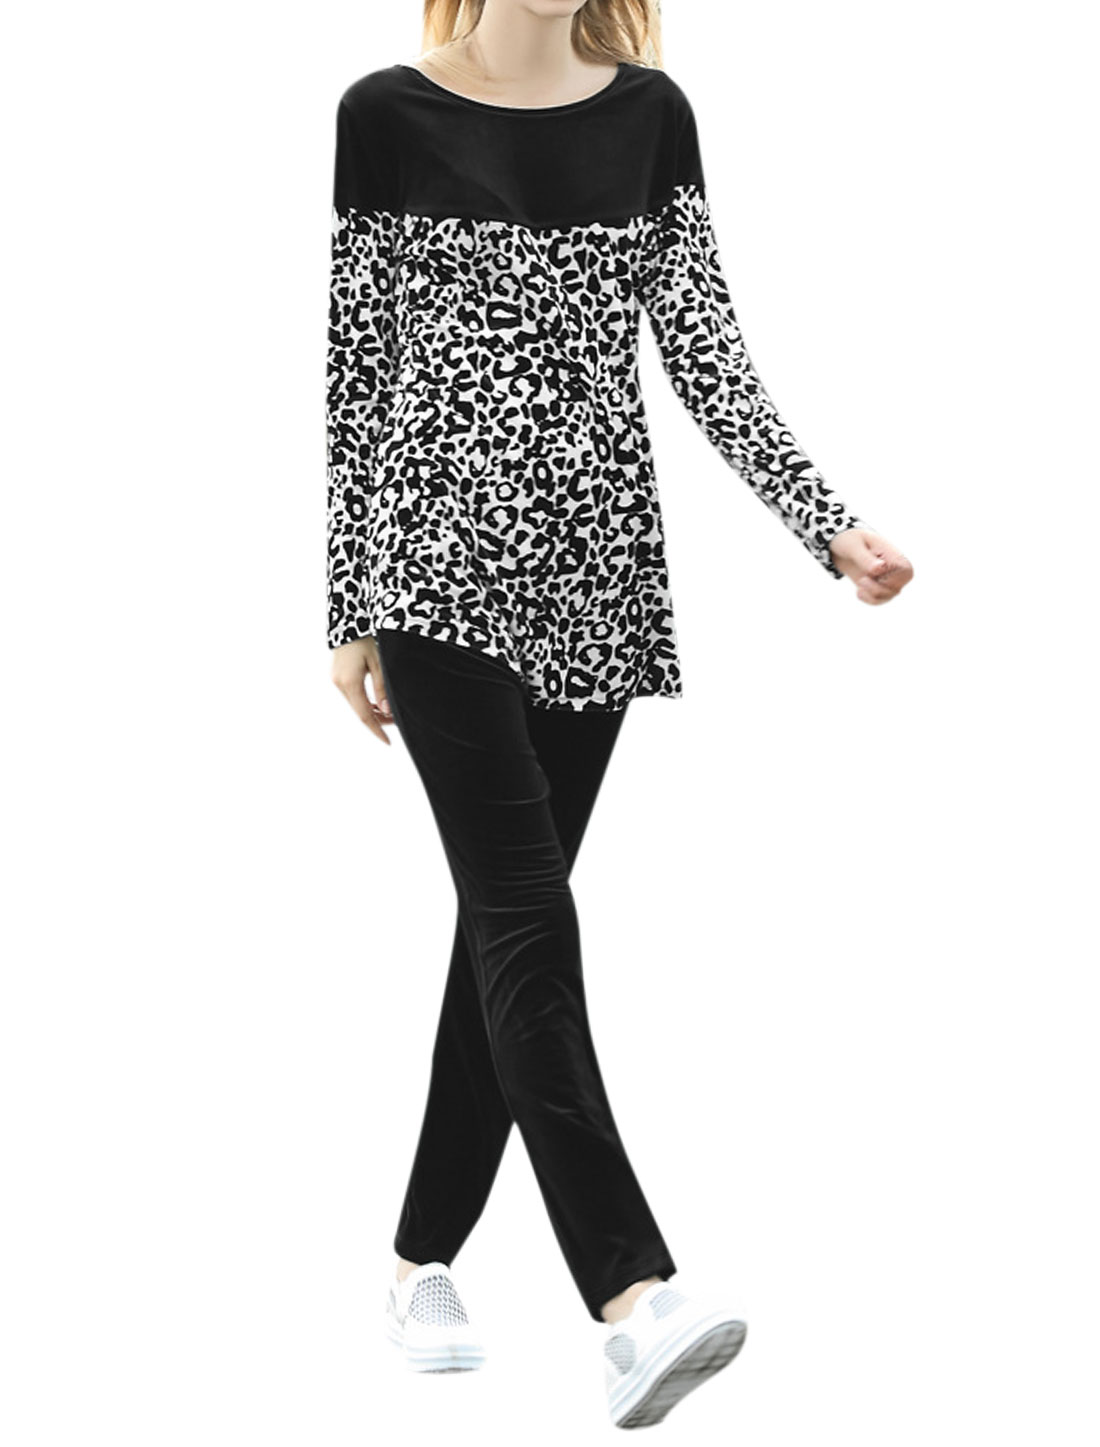 Women Round Neck Color Block Leopard Prints Tunic Top w Pants Sets Black XS